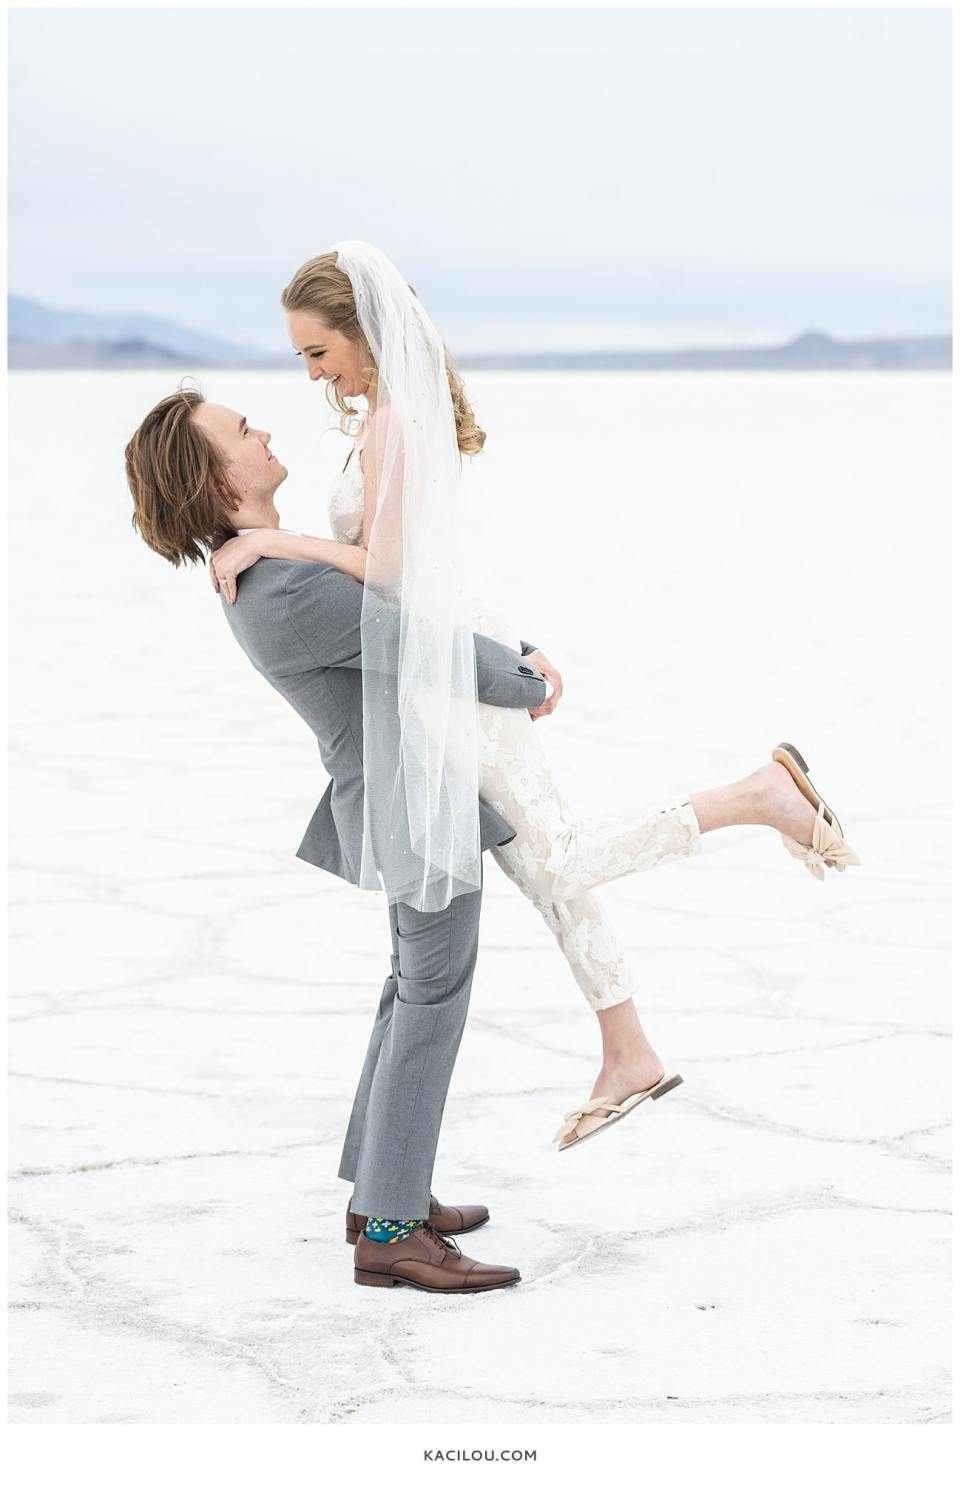 utah elopement photographer kaci lou photography bonneville salt flats sneak peek photos for kylie and max-19.jpg